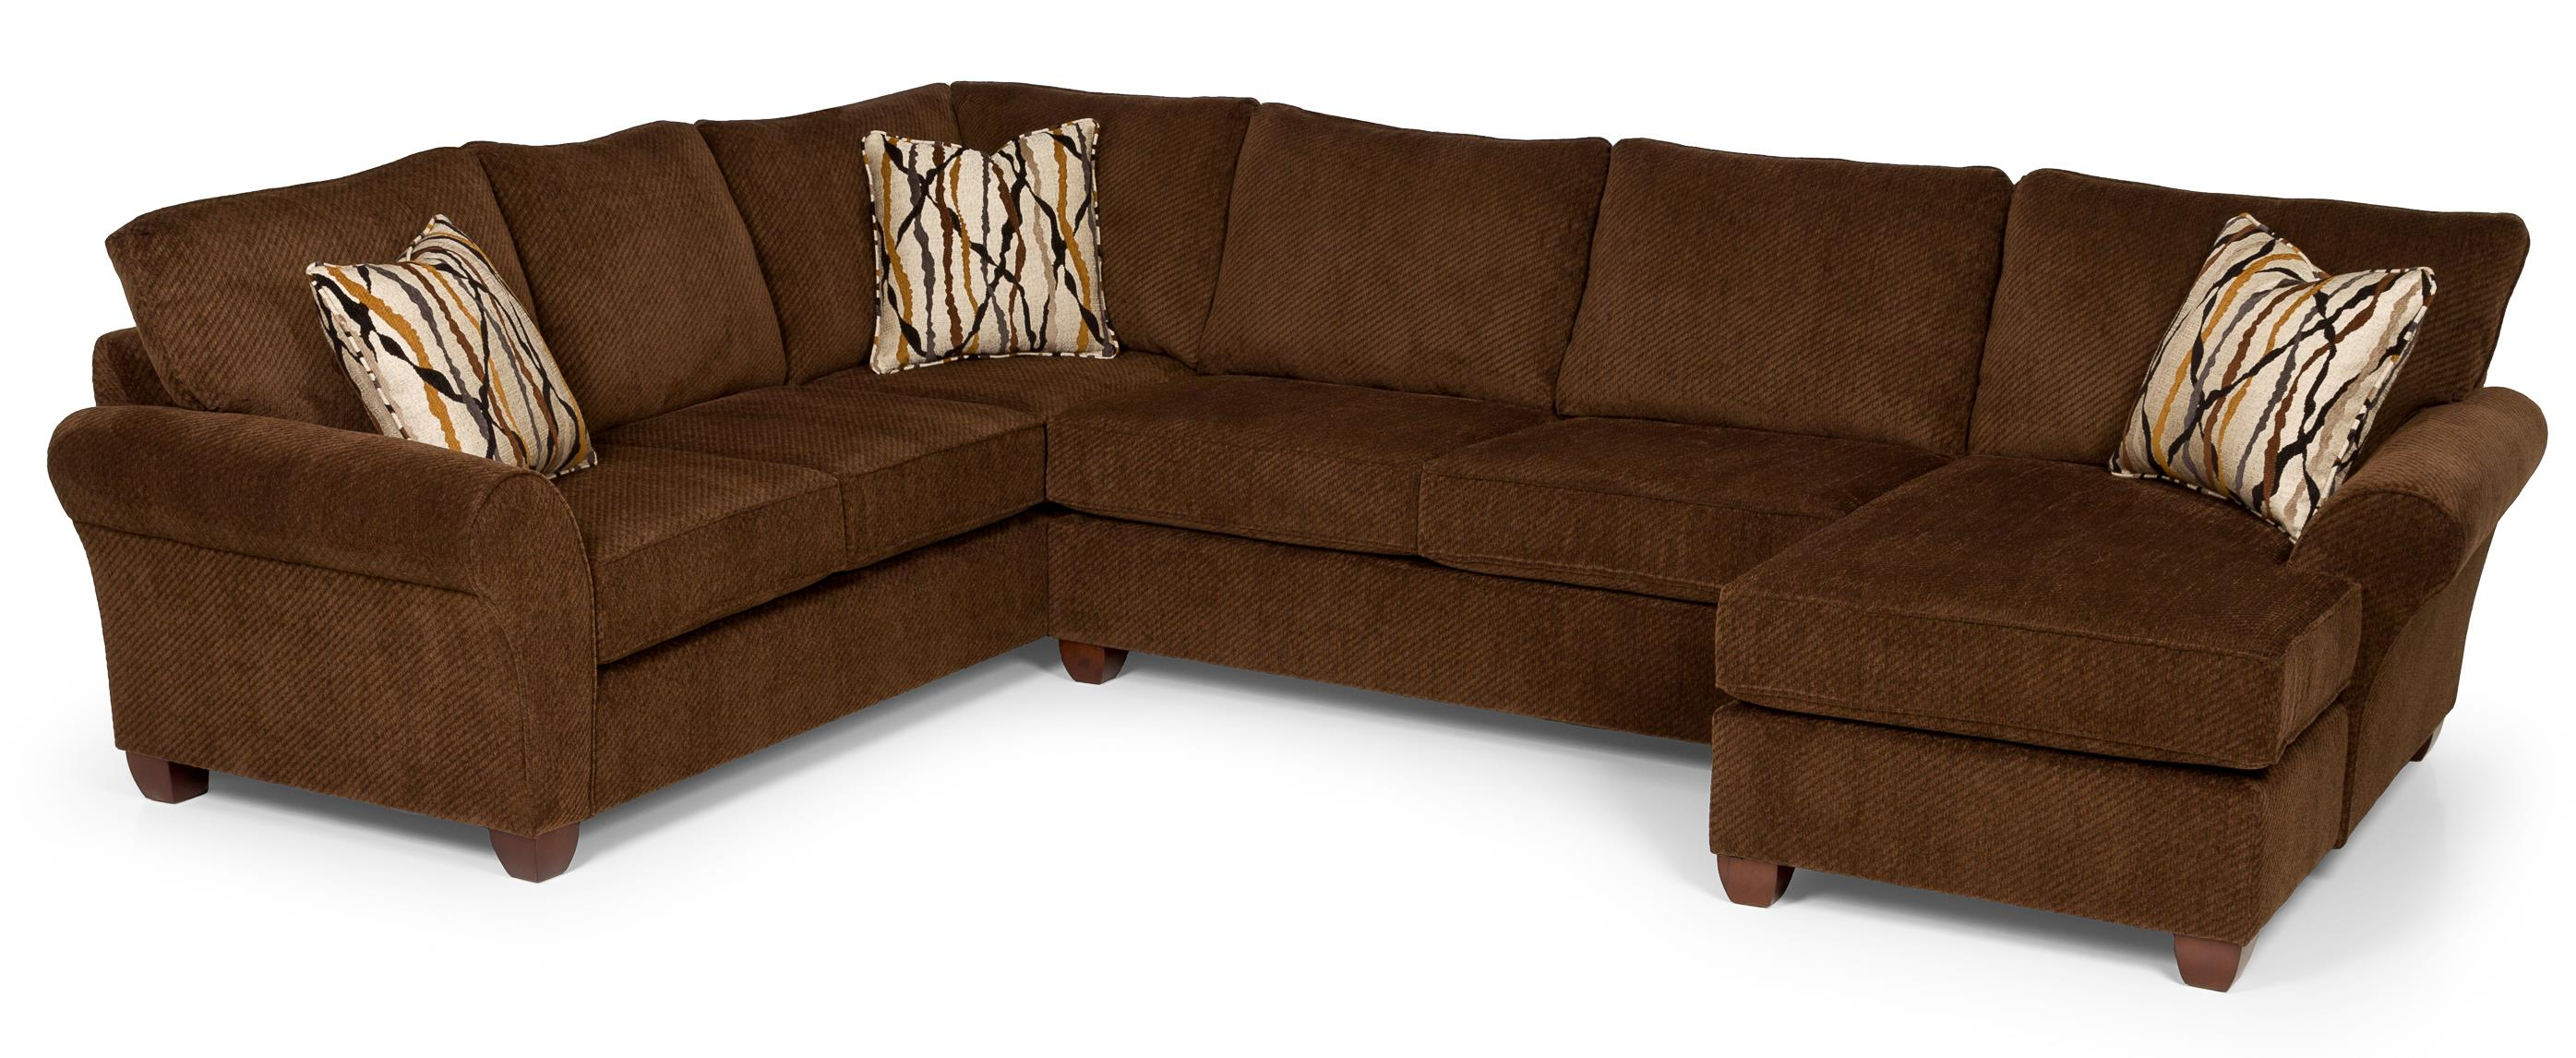 320 Sectional Sofa by Stanton at Wilson's Furniture